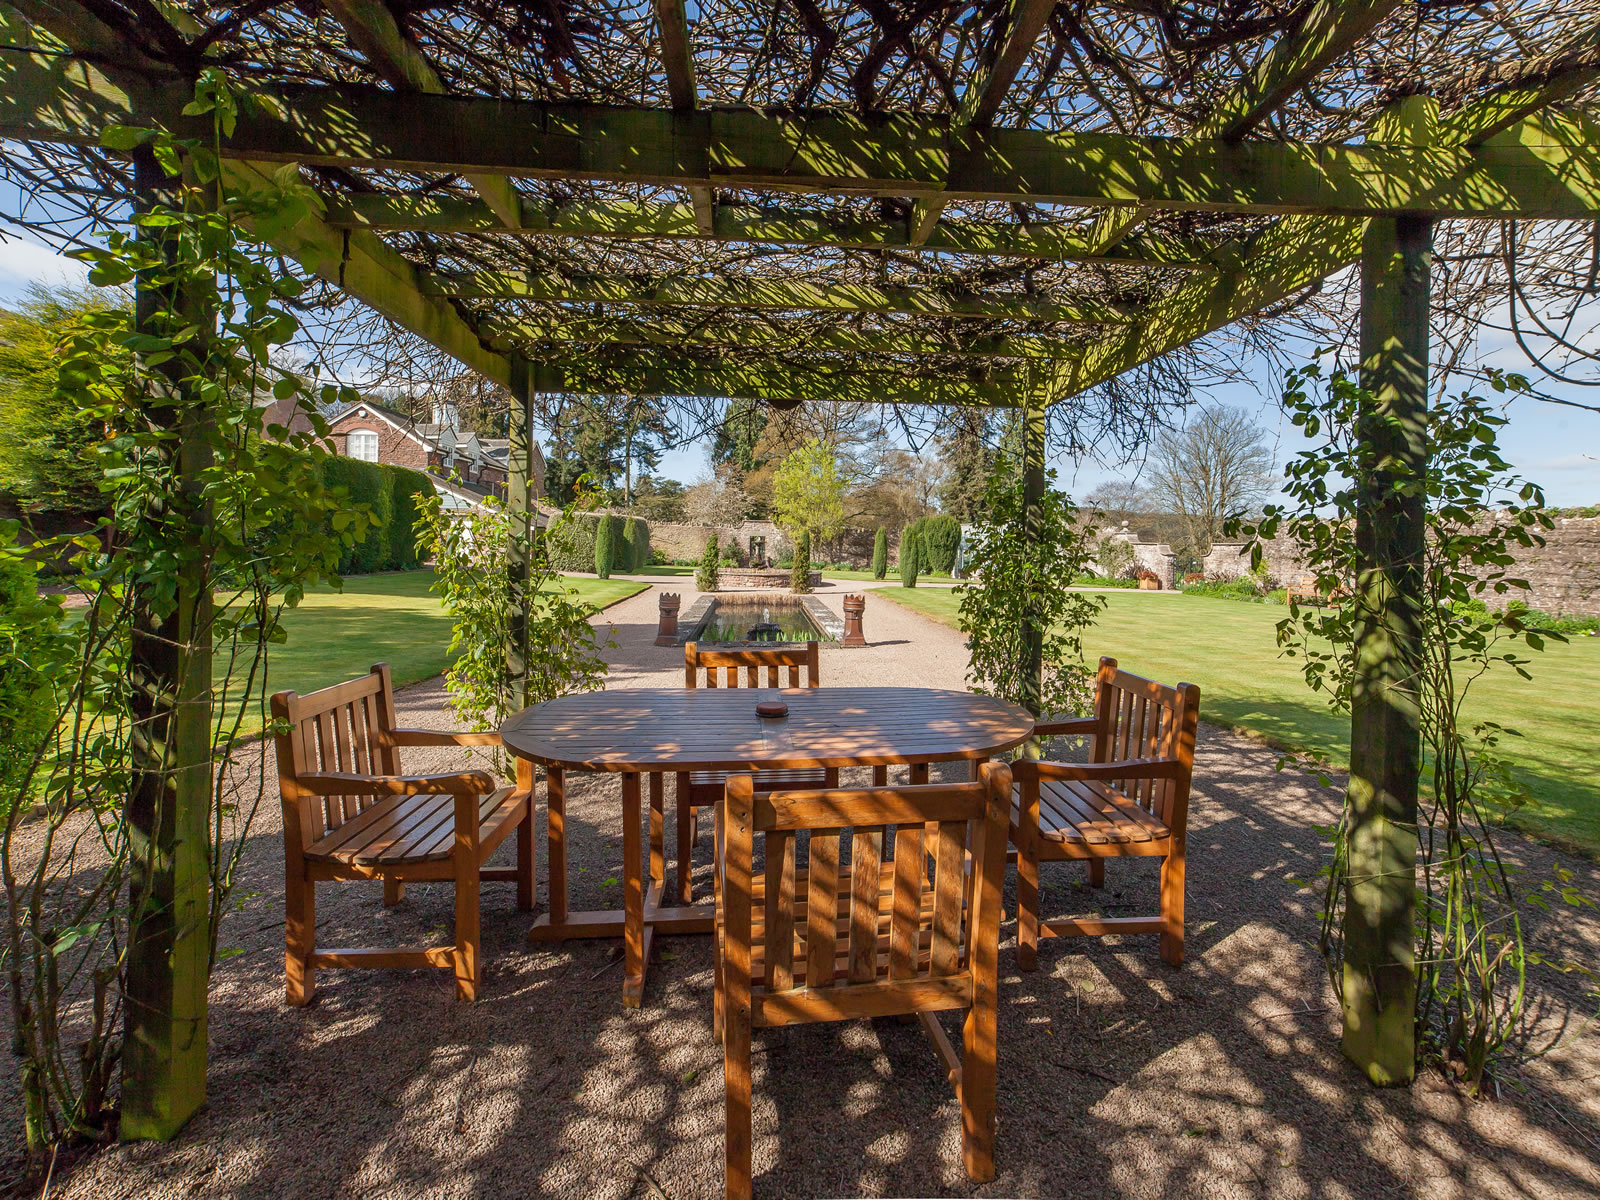 Luxury Holiday Accommodation, 5 star self catering cottages in the ...